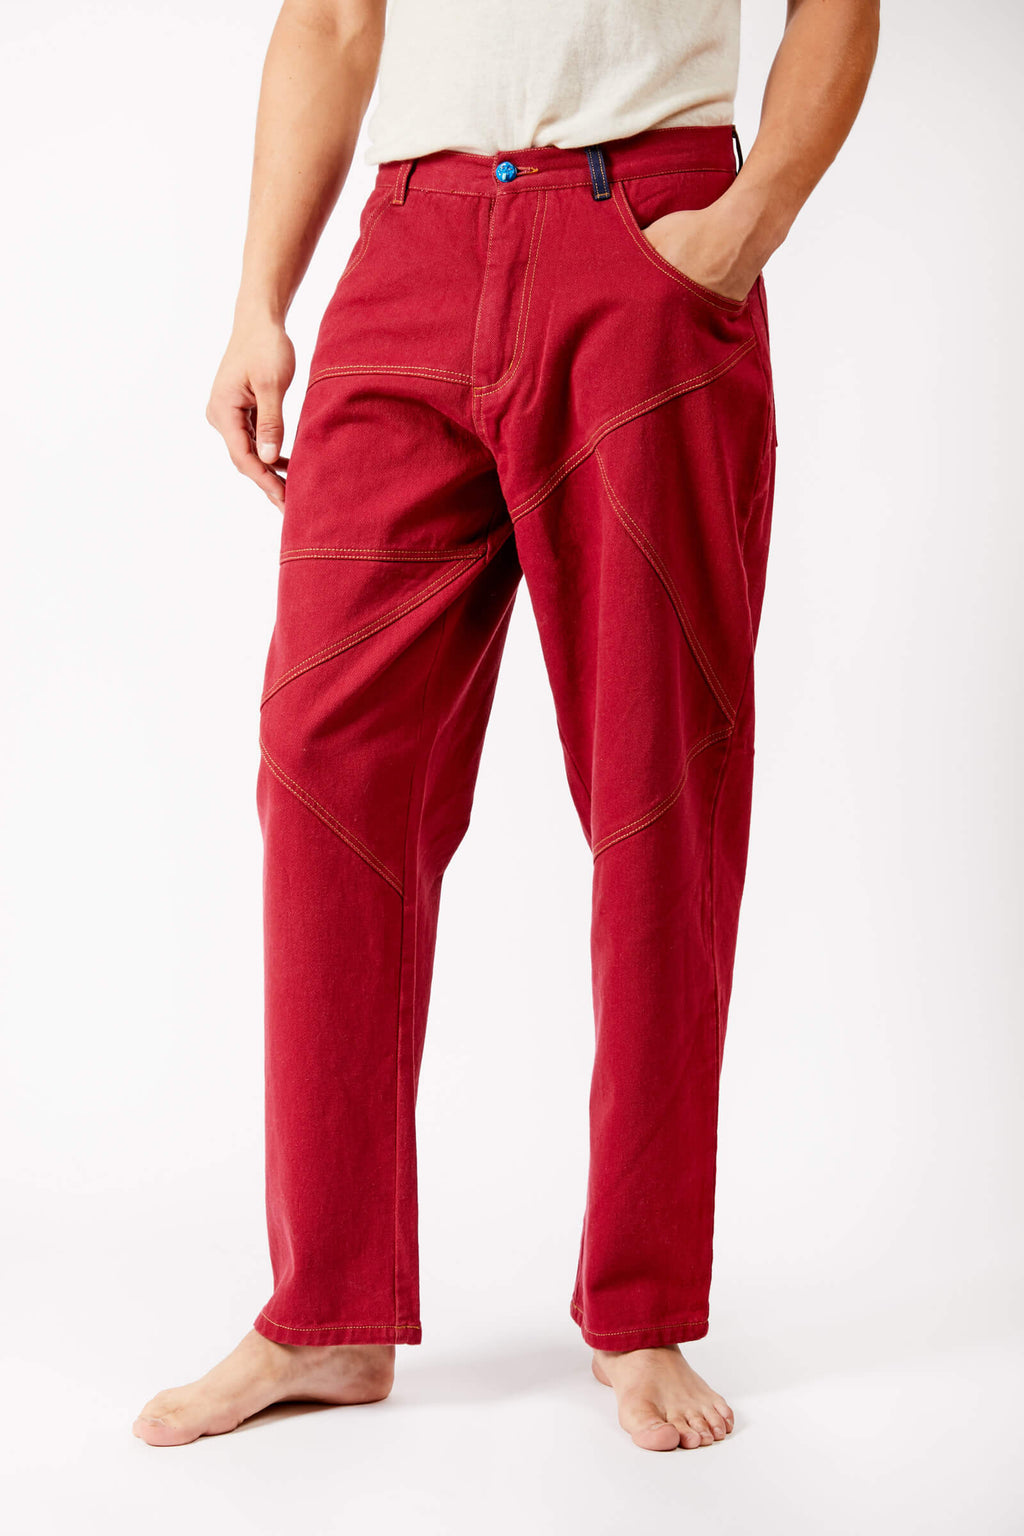 Adrian Schachter Red Denim Trousers